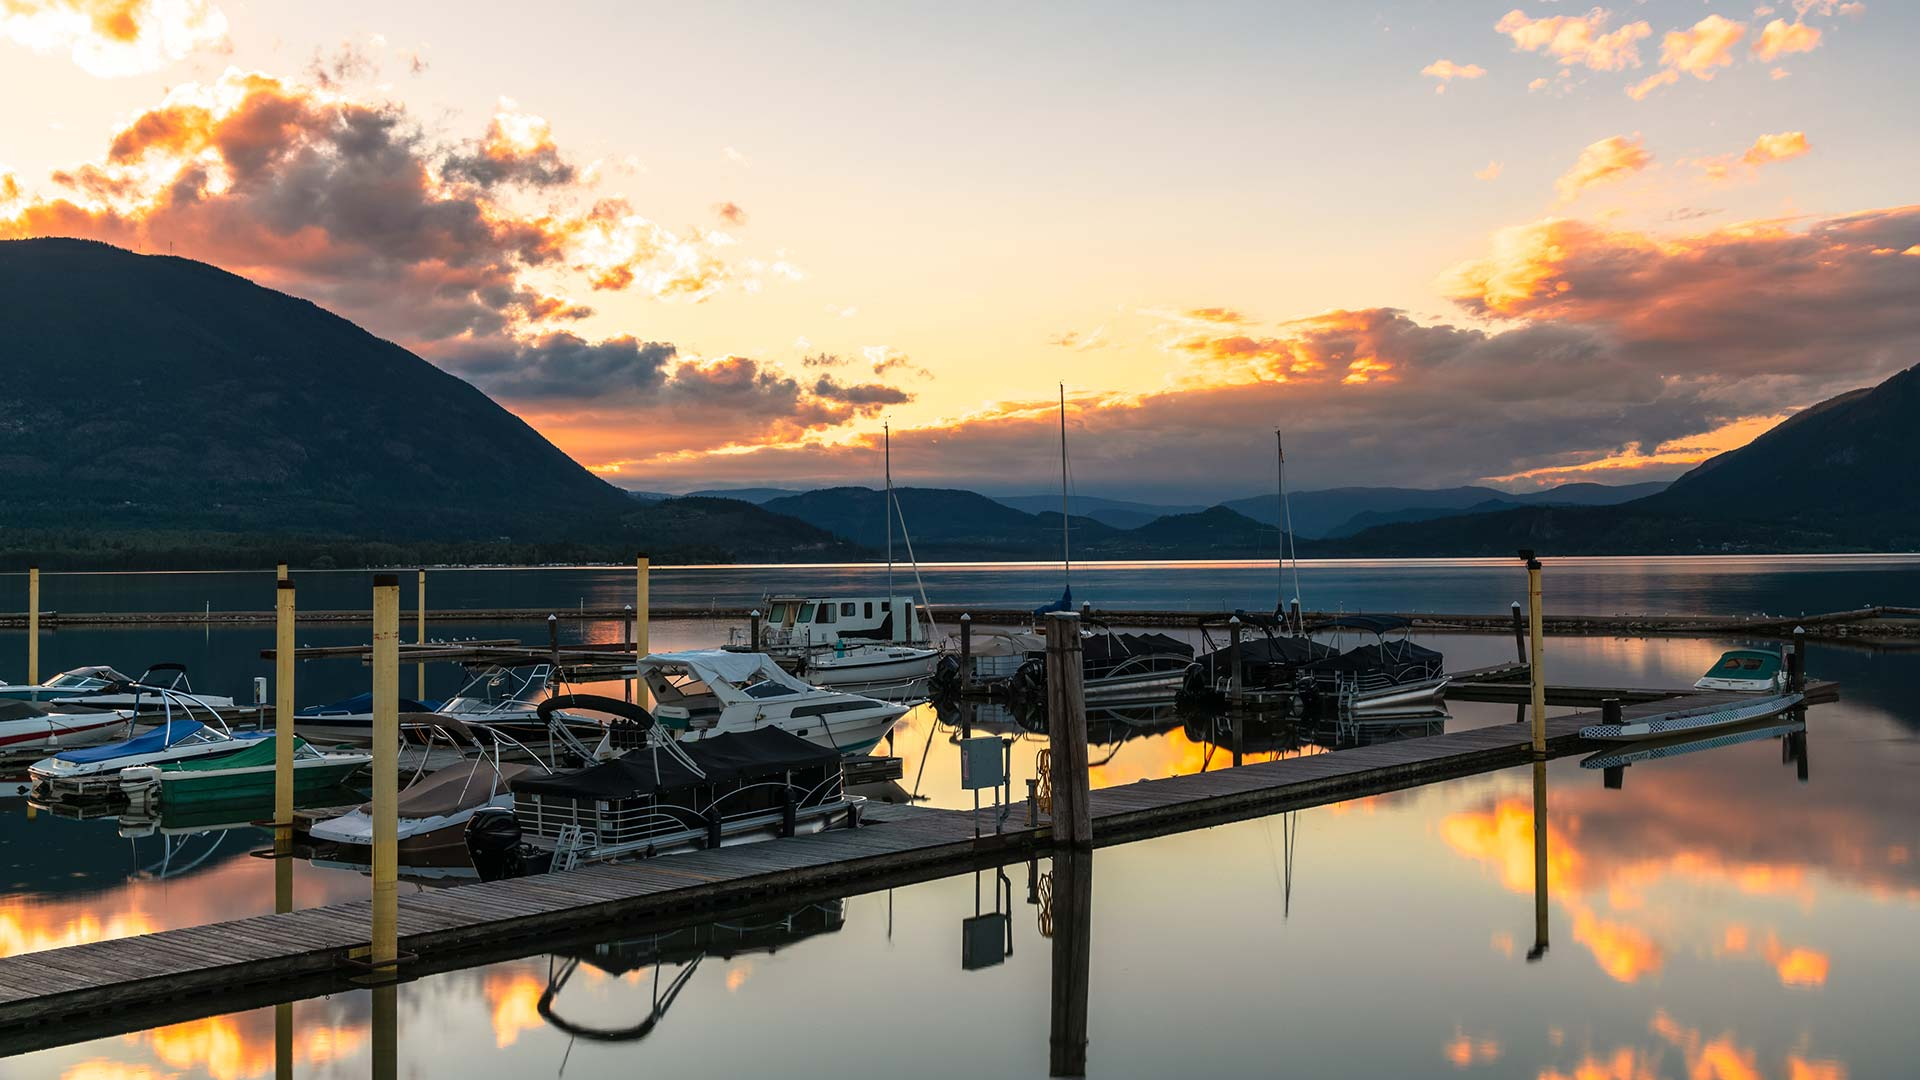 Panorama to illustrate dating in salmon arm